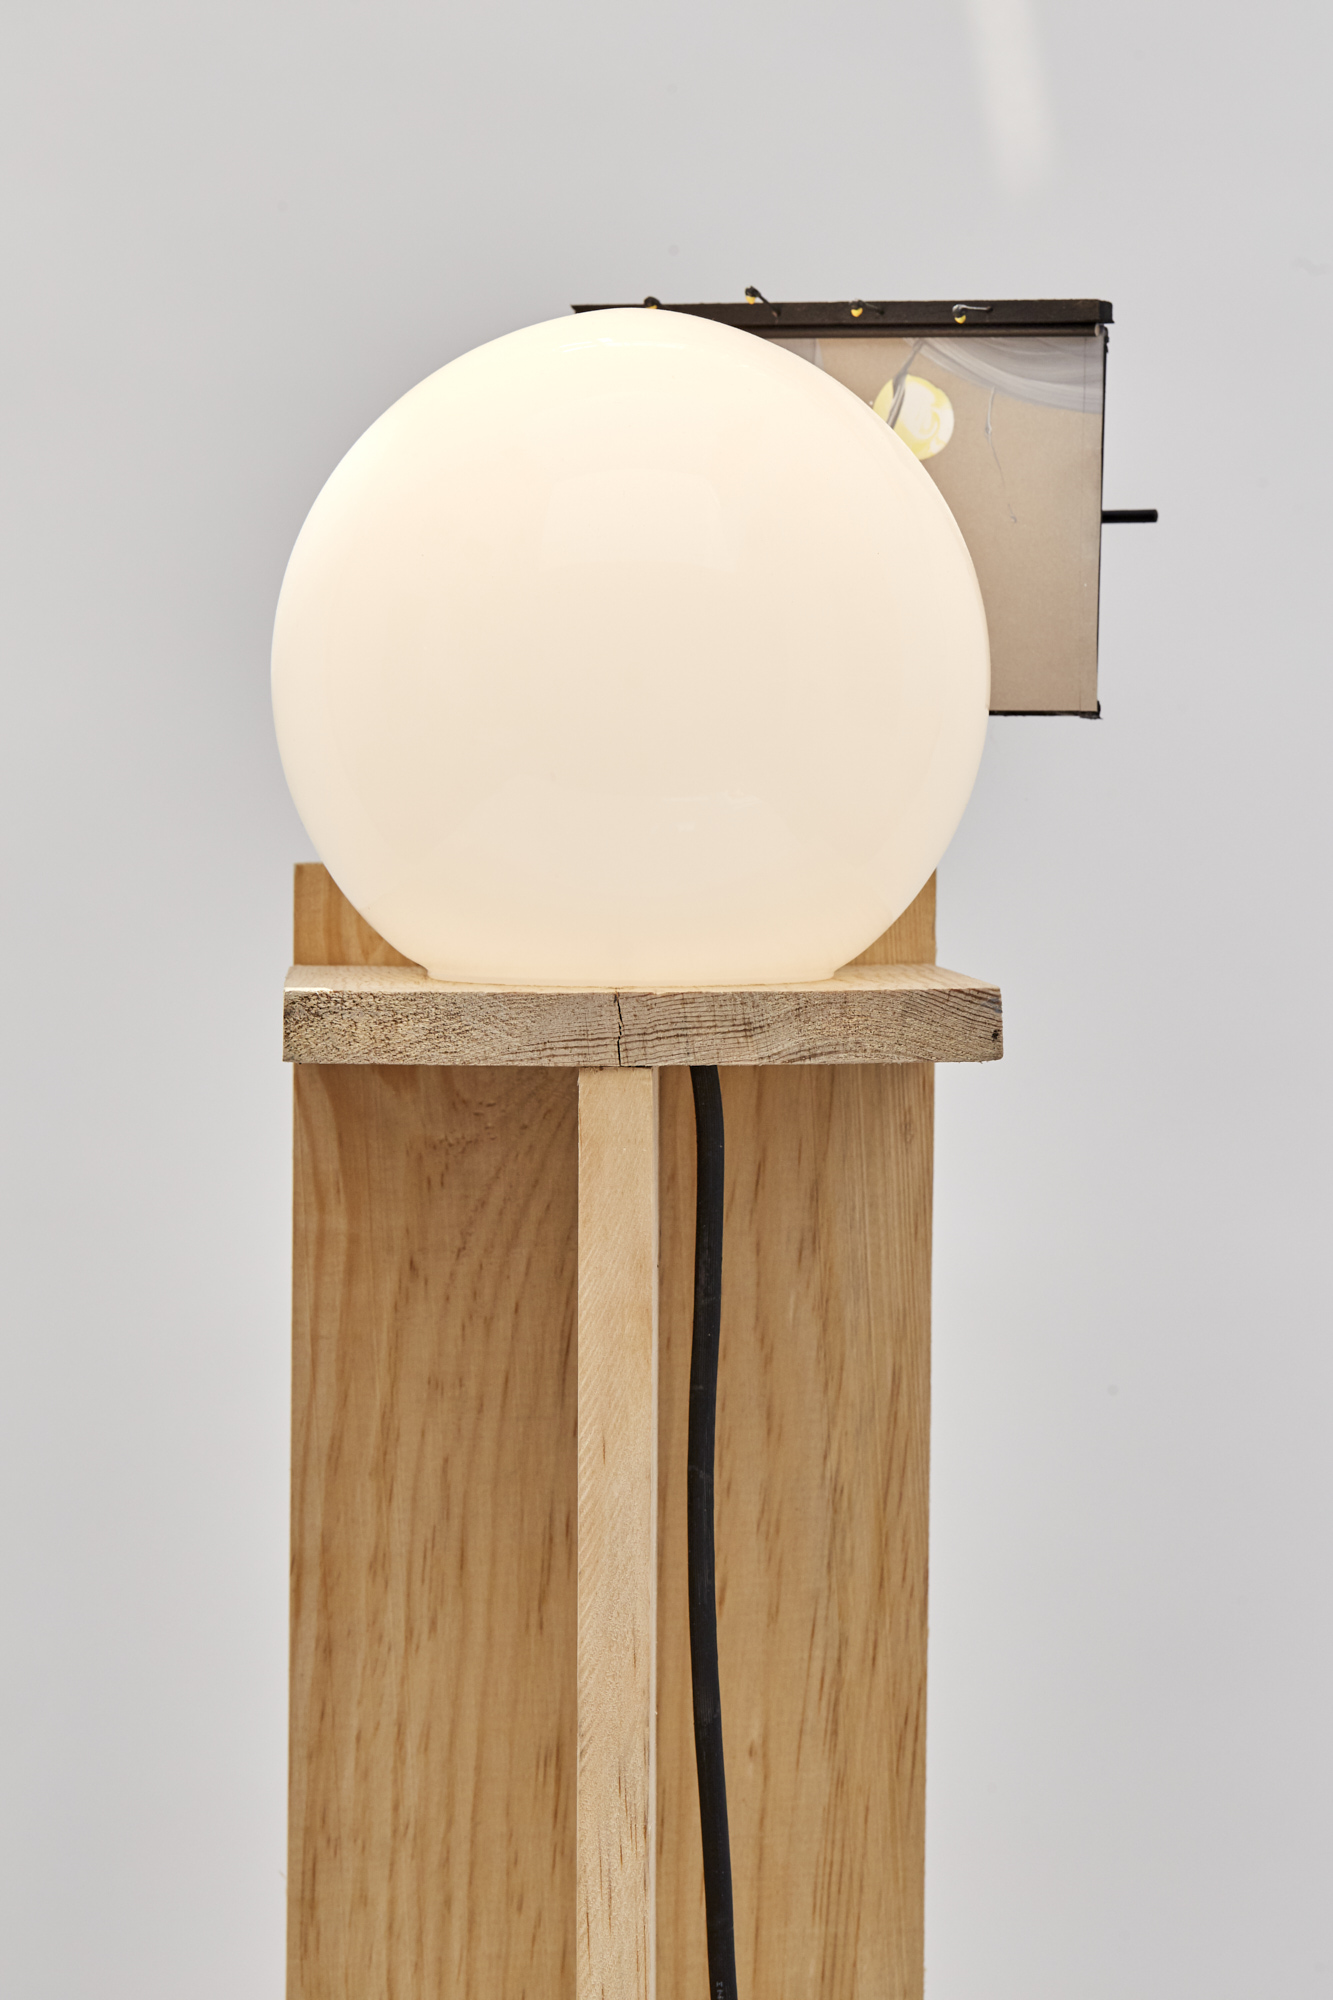 Charlie Godet Thomas, Rooftop Poem (Harvest) (detail), 2020. Wood, cut section of paper palette, glass, electrical light fitting, bulb, wooden dowels, plastic, screws, glue, acrylic paint. 139 x 21 x 19 cm.